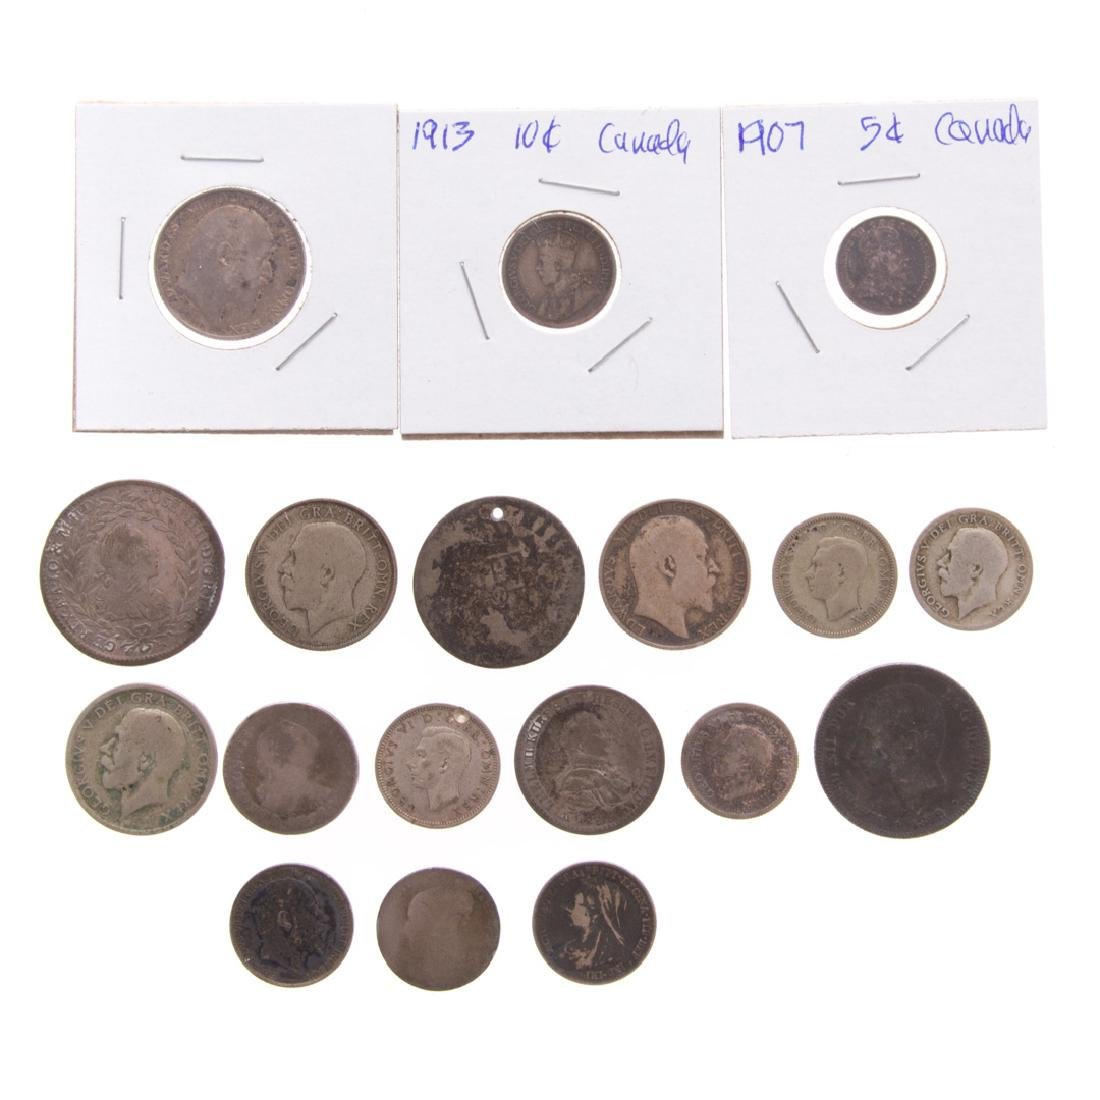 [World] 18th - 20th Century Silver Coins